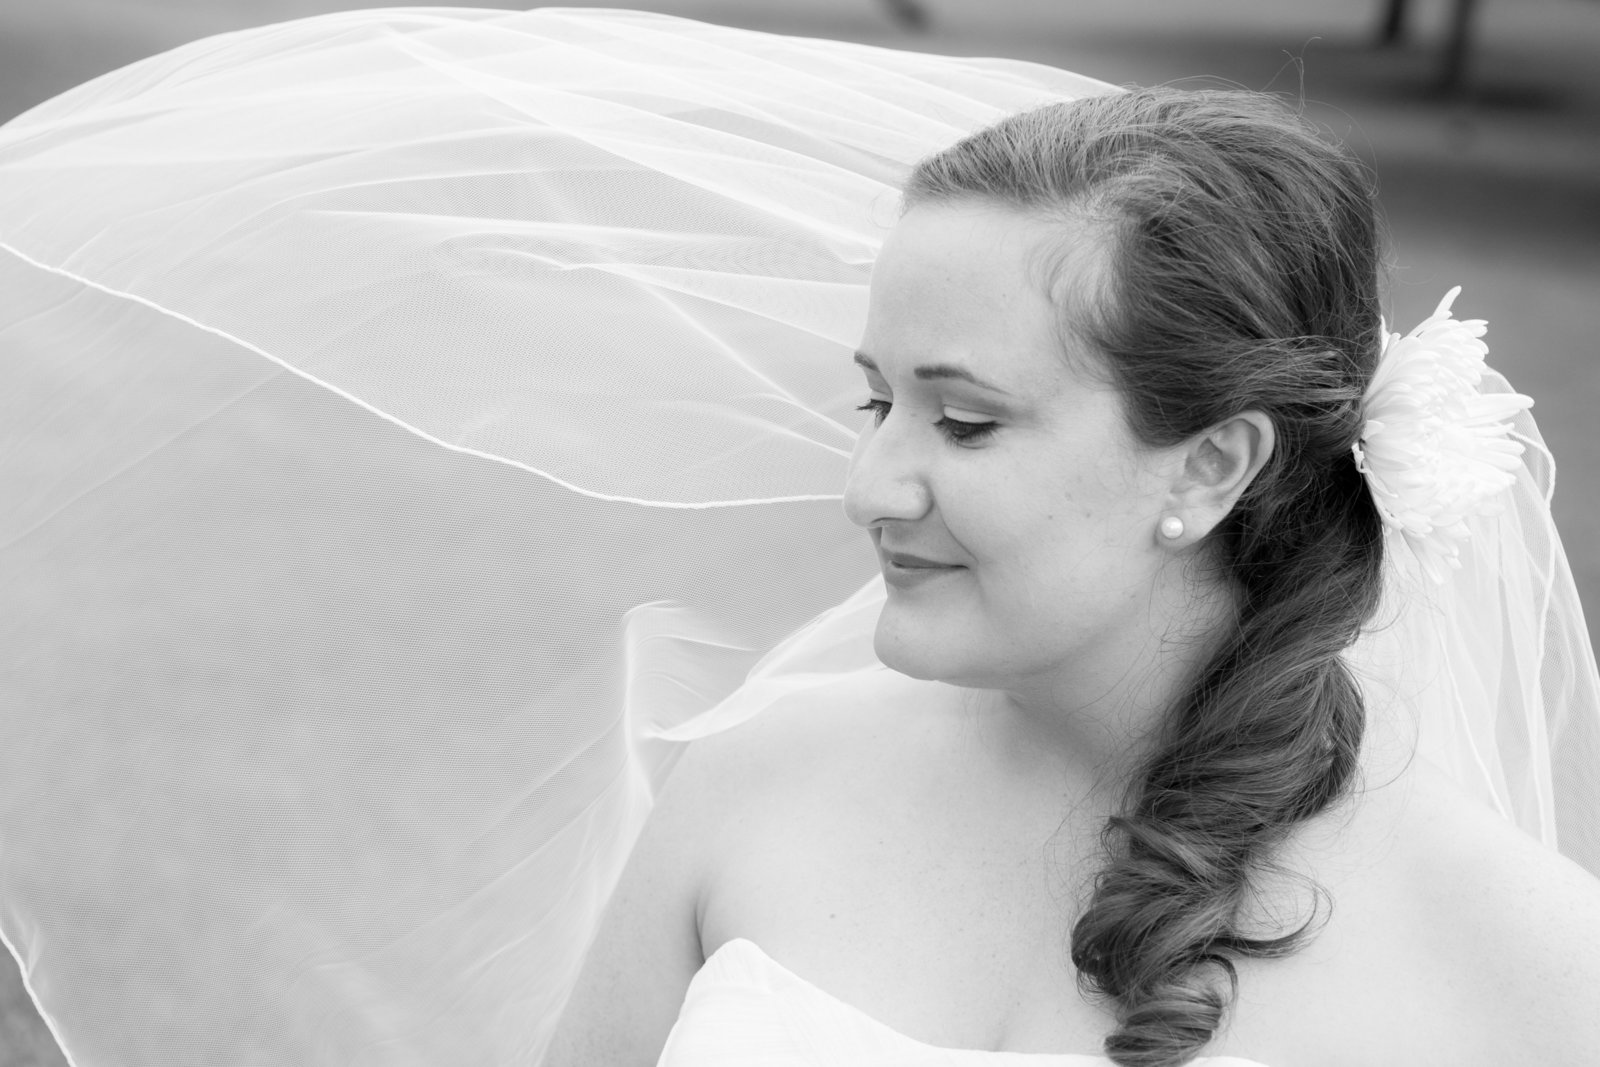 Austin Family Photographer, Tiffany Chapman, bride with veil photo